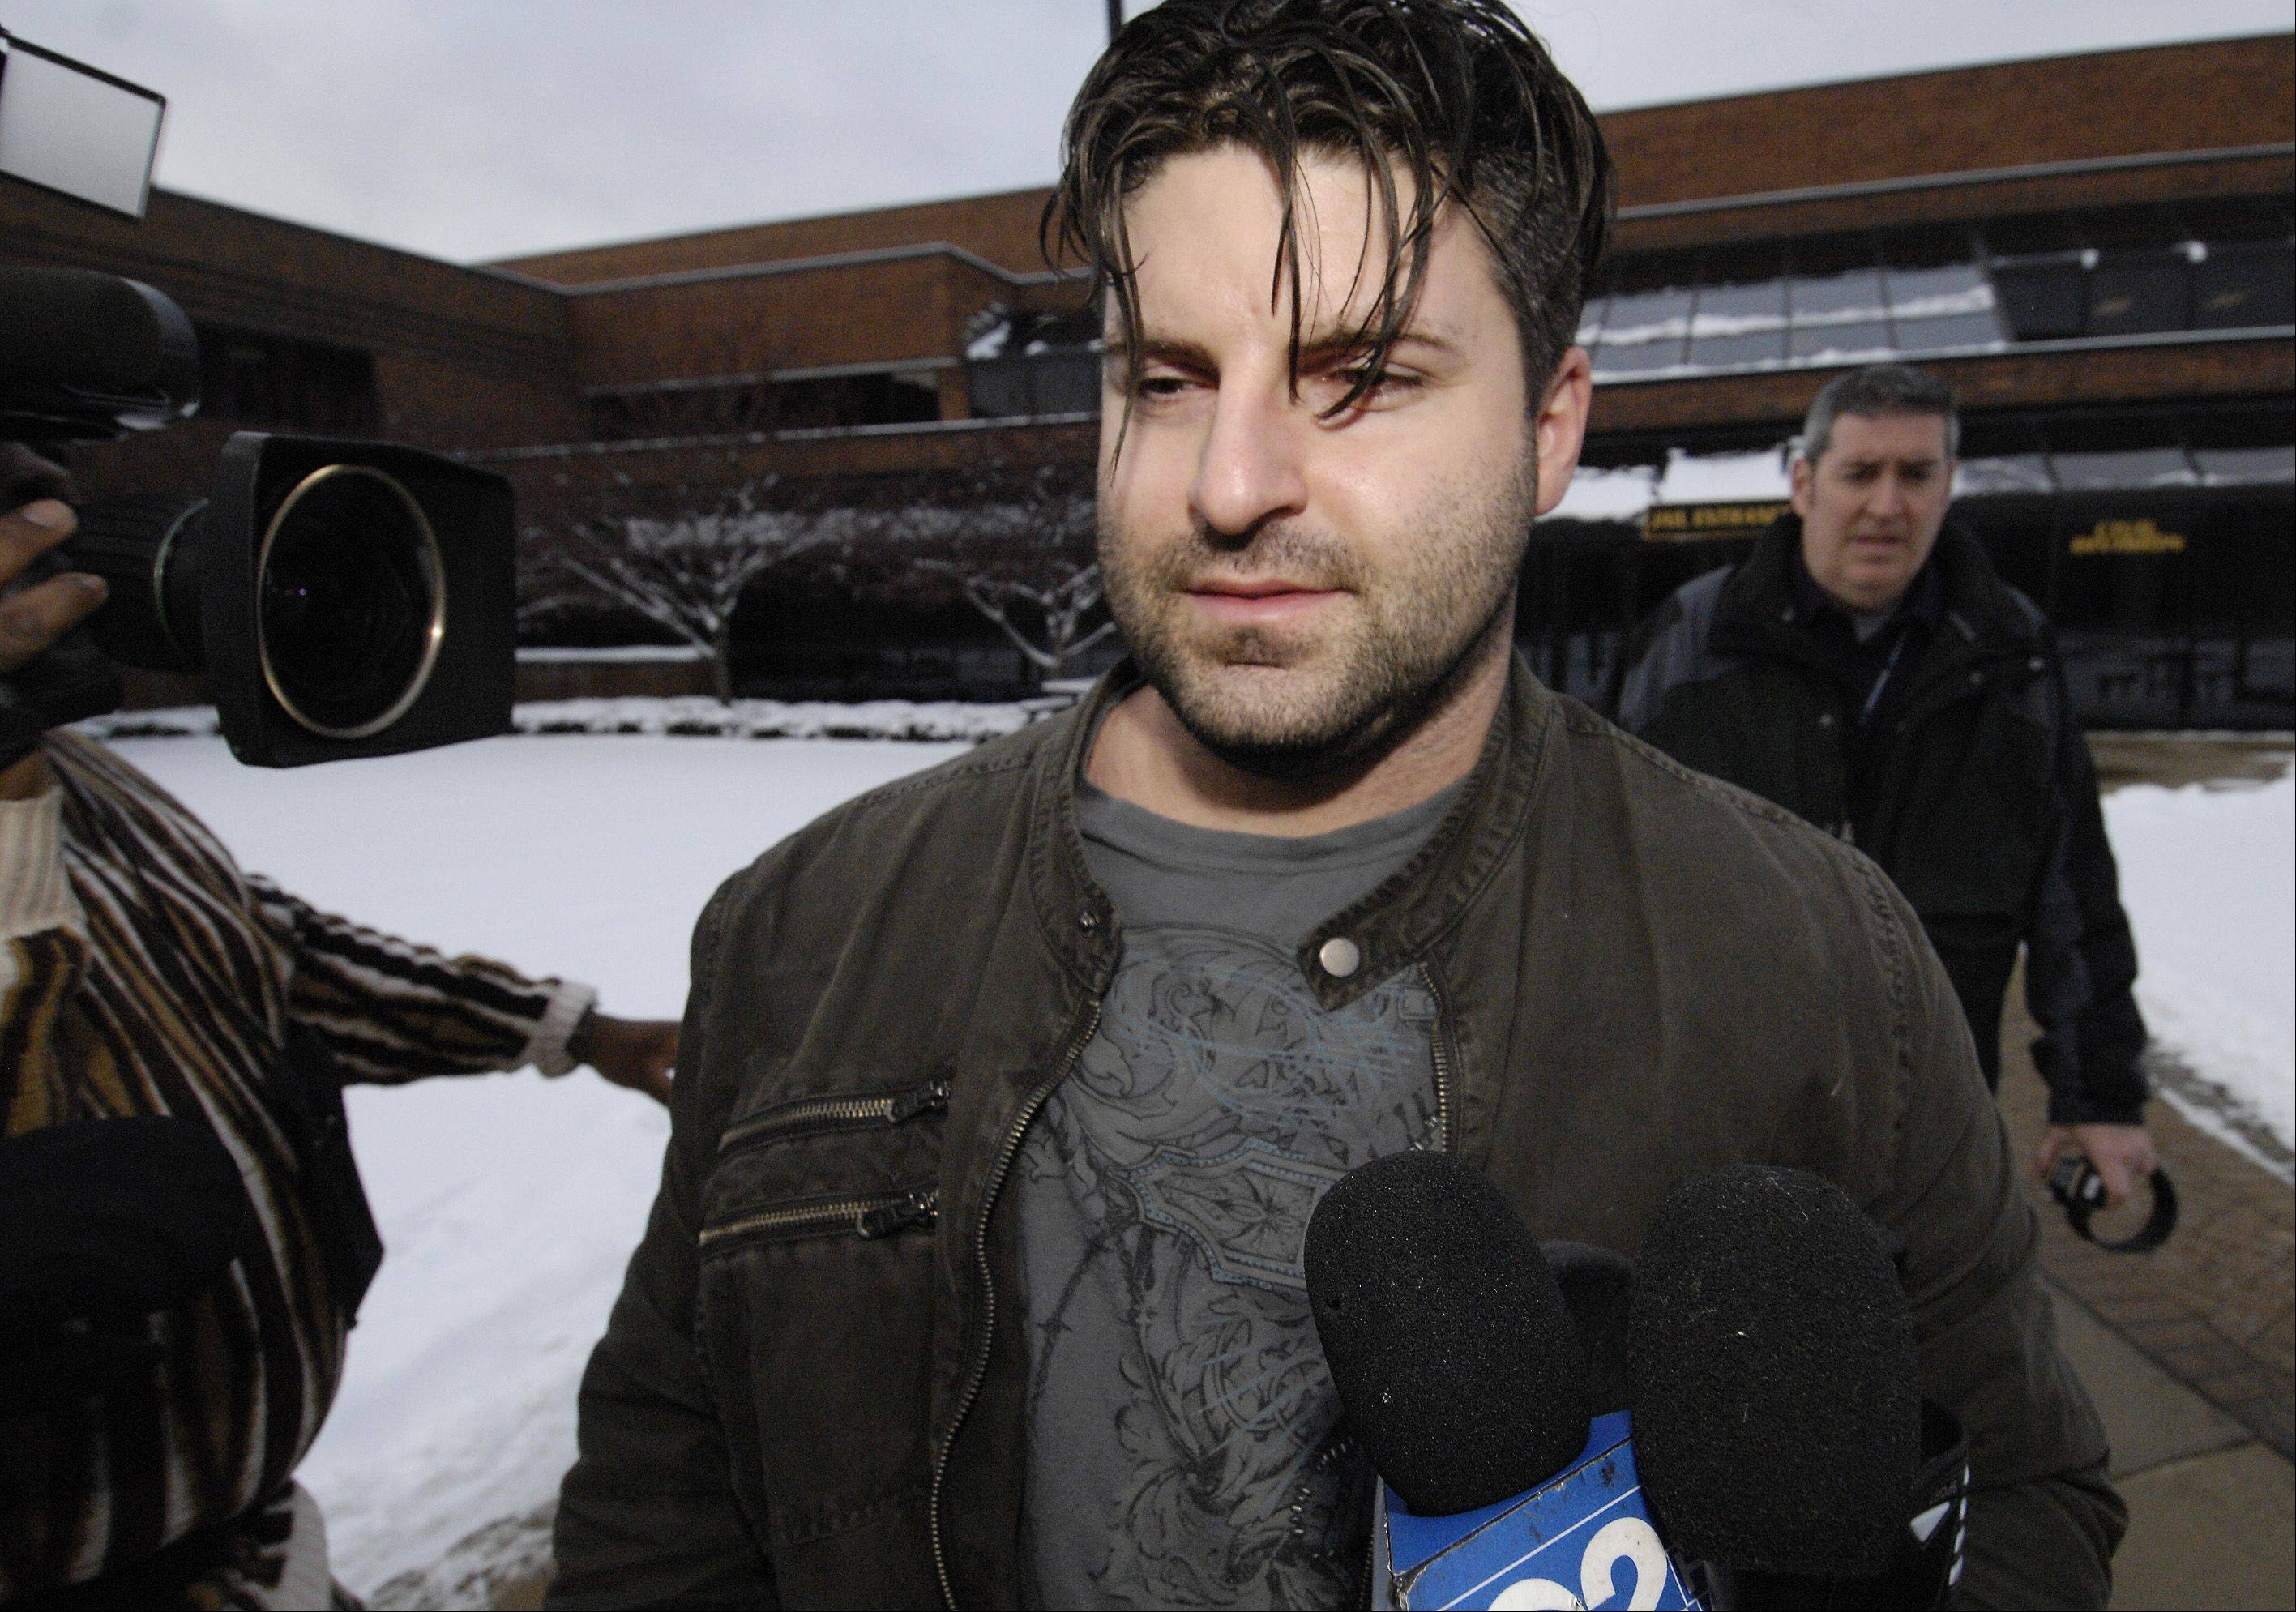 Former Schaumburg police officer Matthew Hudak leaves DuPage County jail Monday after posting $35,000 bond.